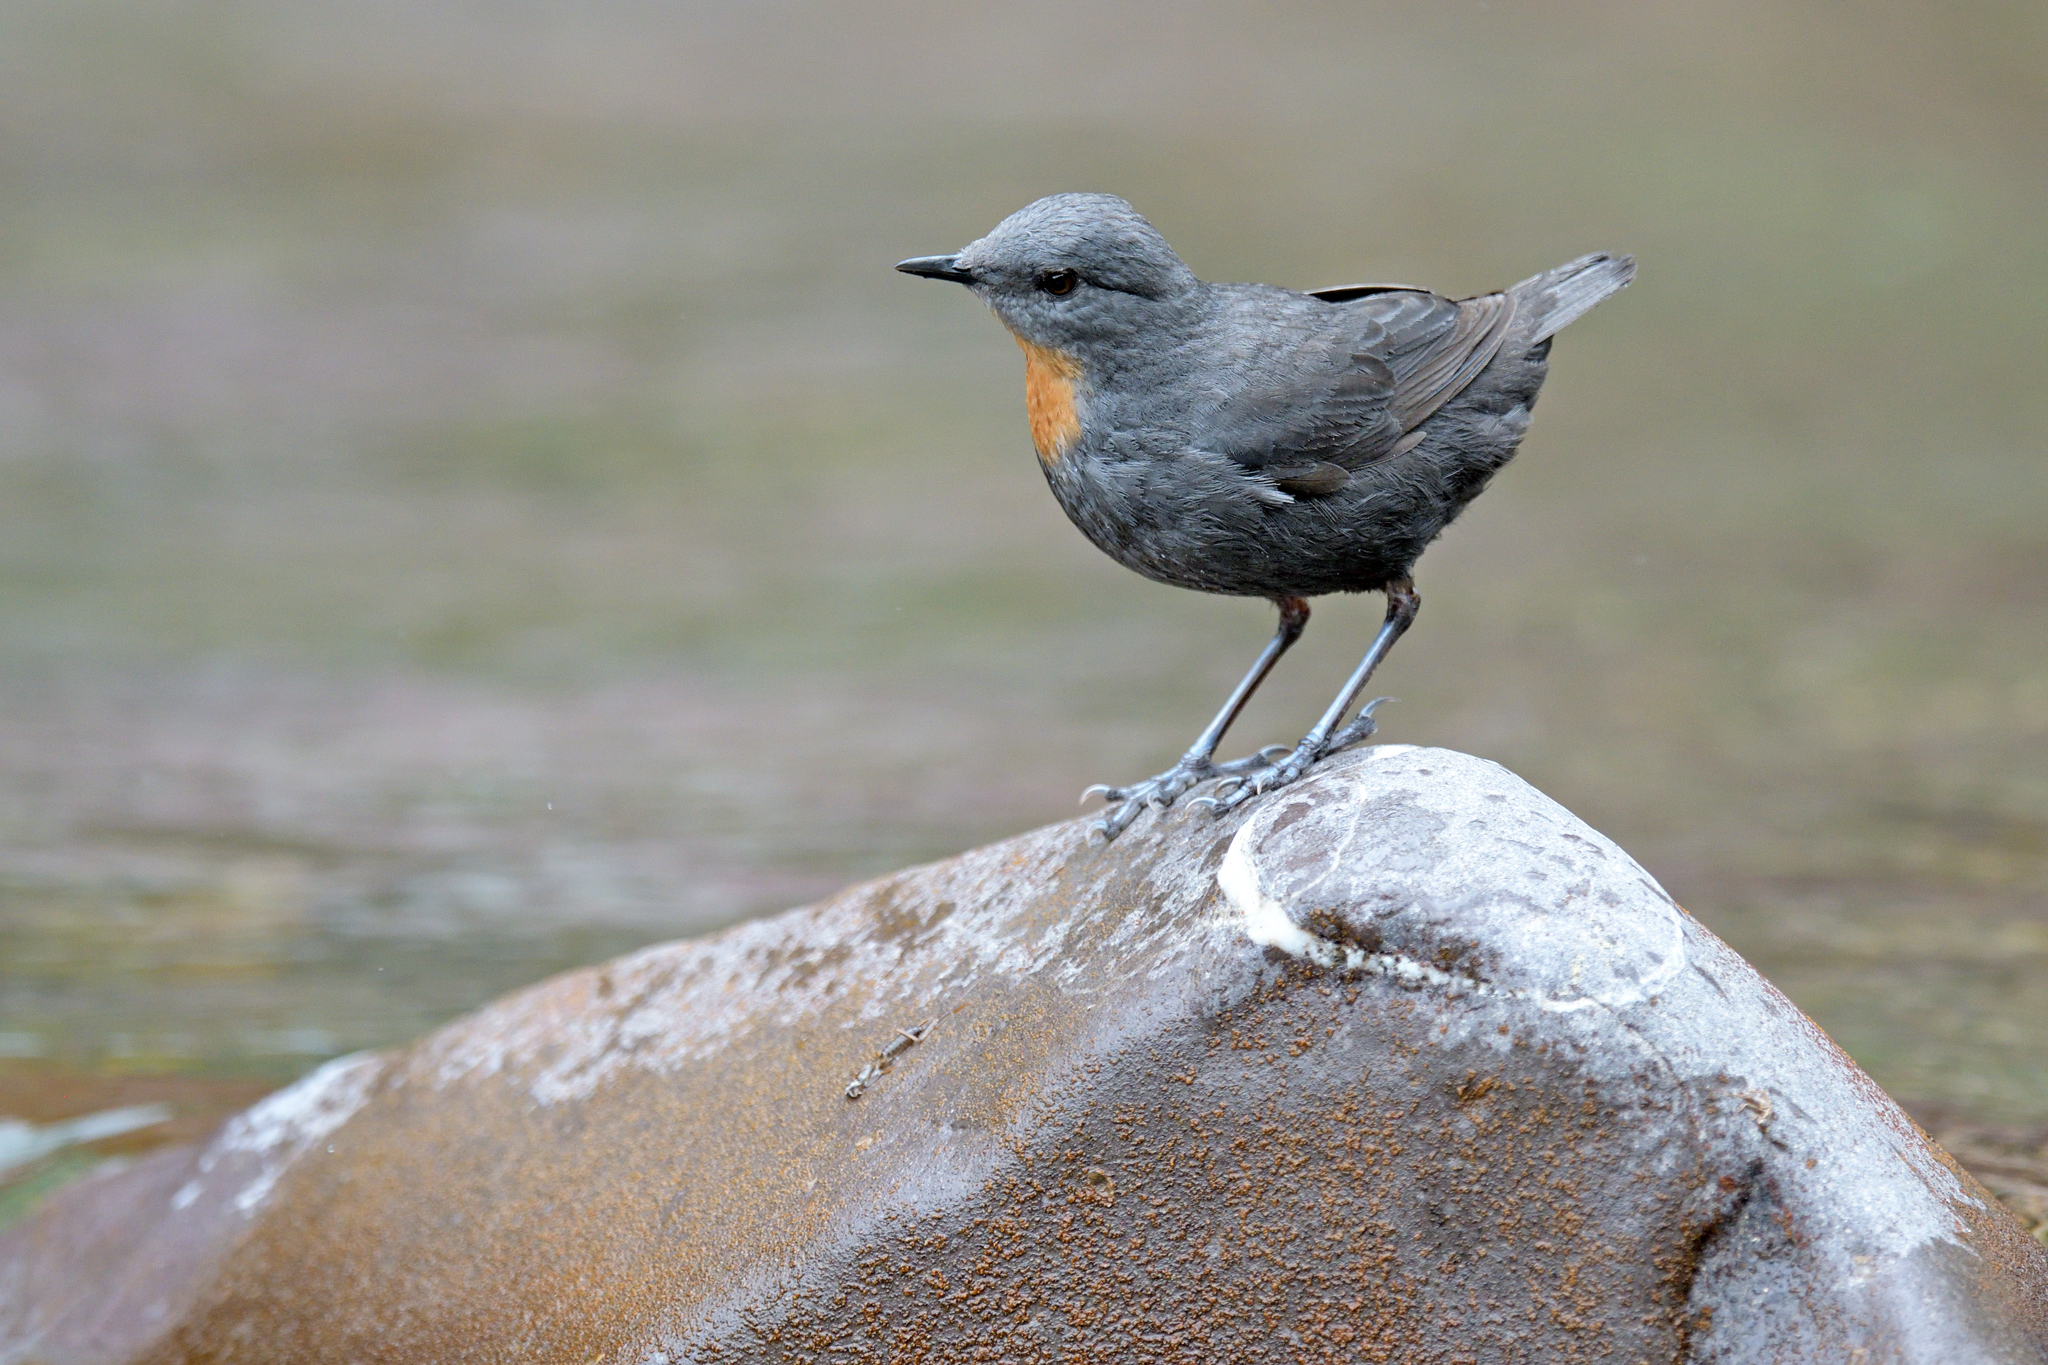 Rufous-throated Dipper - El Infiernillo